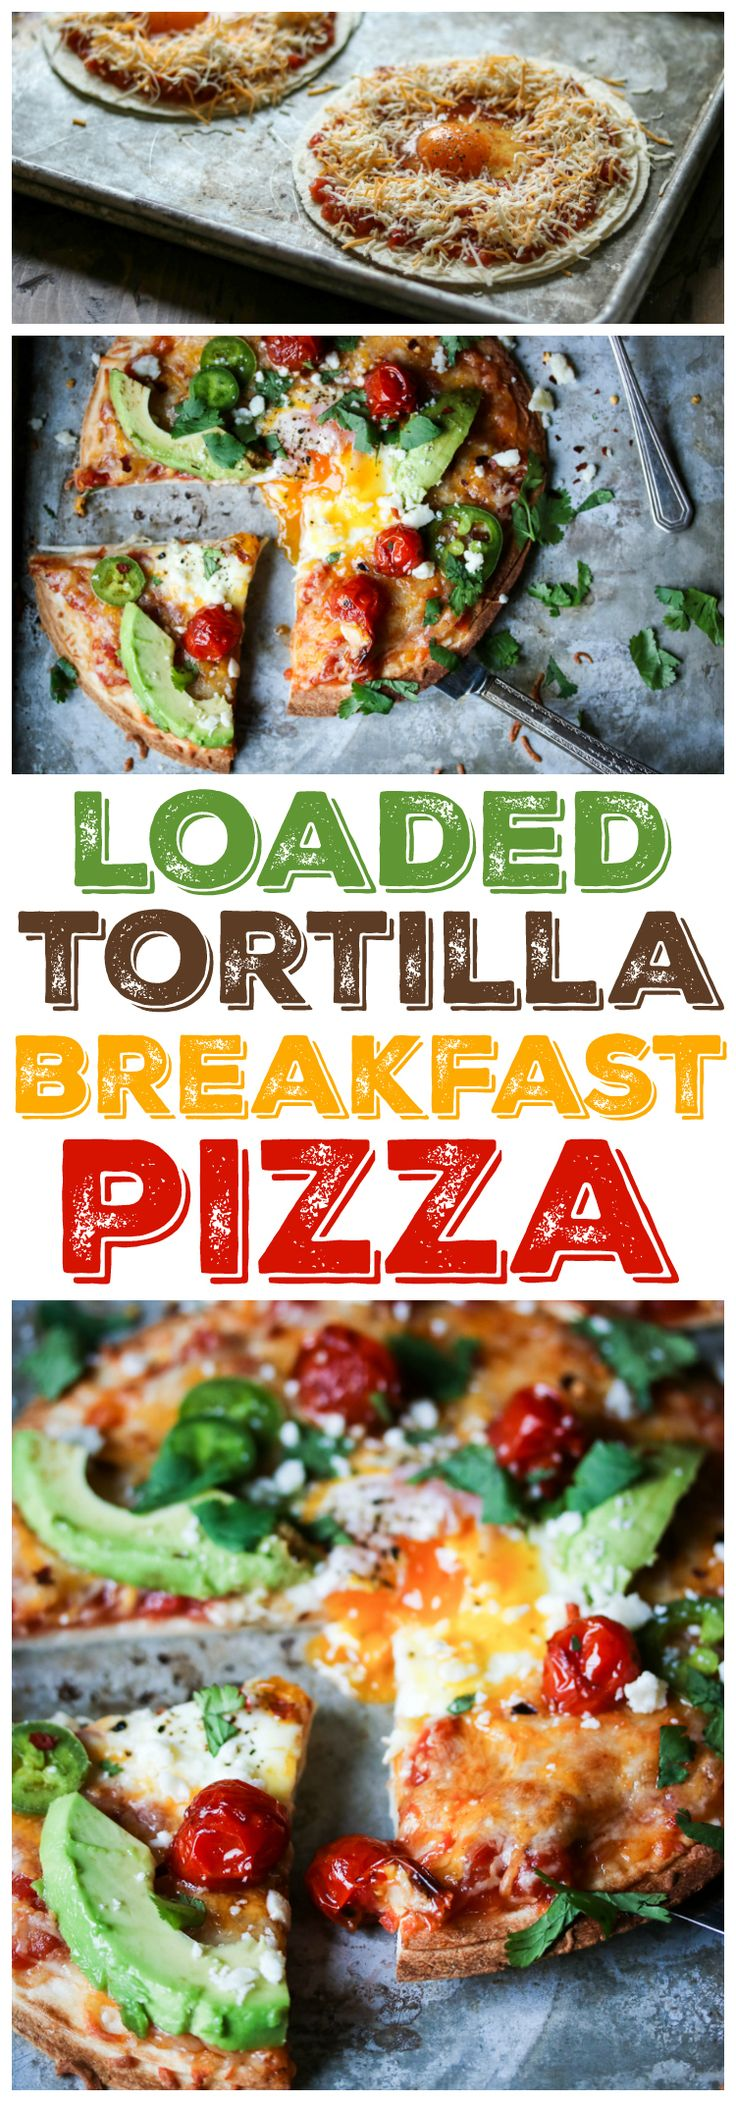 Tortillas, salsa, cheese, and eggs are all you need to make these easy Tortilla Breakfast Pizzas. Load them up with your favorite toppings and dig in!